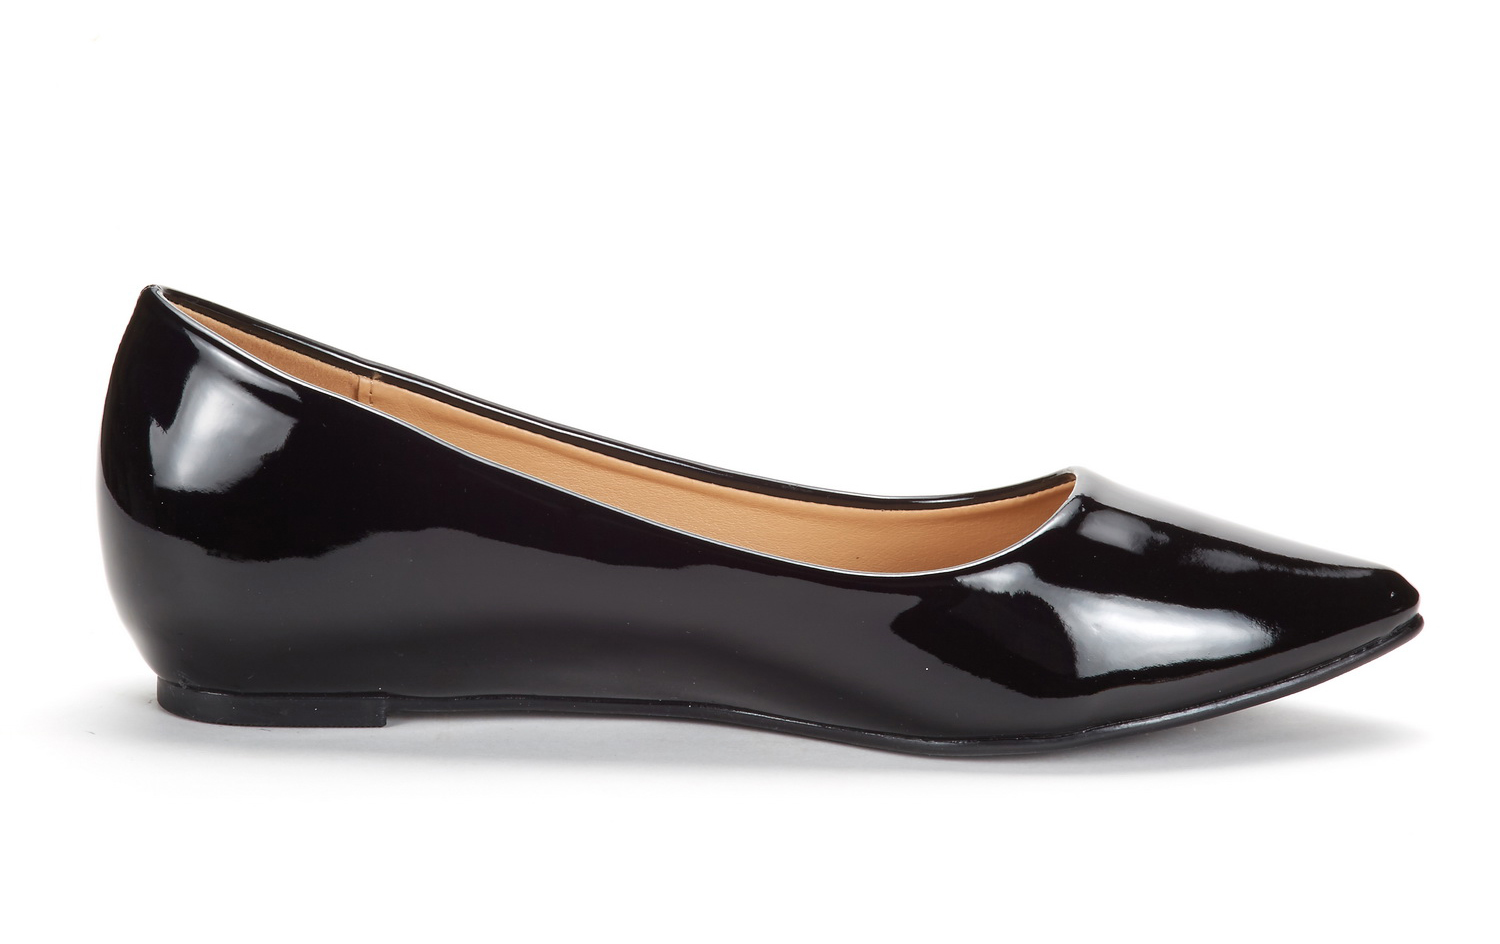 DREAM-PAIRS-Women-Low-Wedge-Flats-Ladies-Pointed-Toe-Slip-On-Comfort-Flat-Shoes thumbnail 44